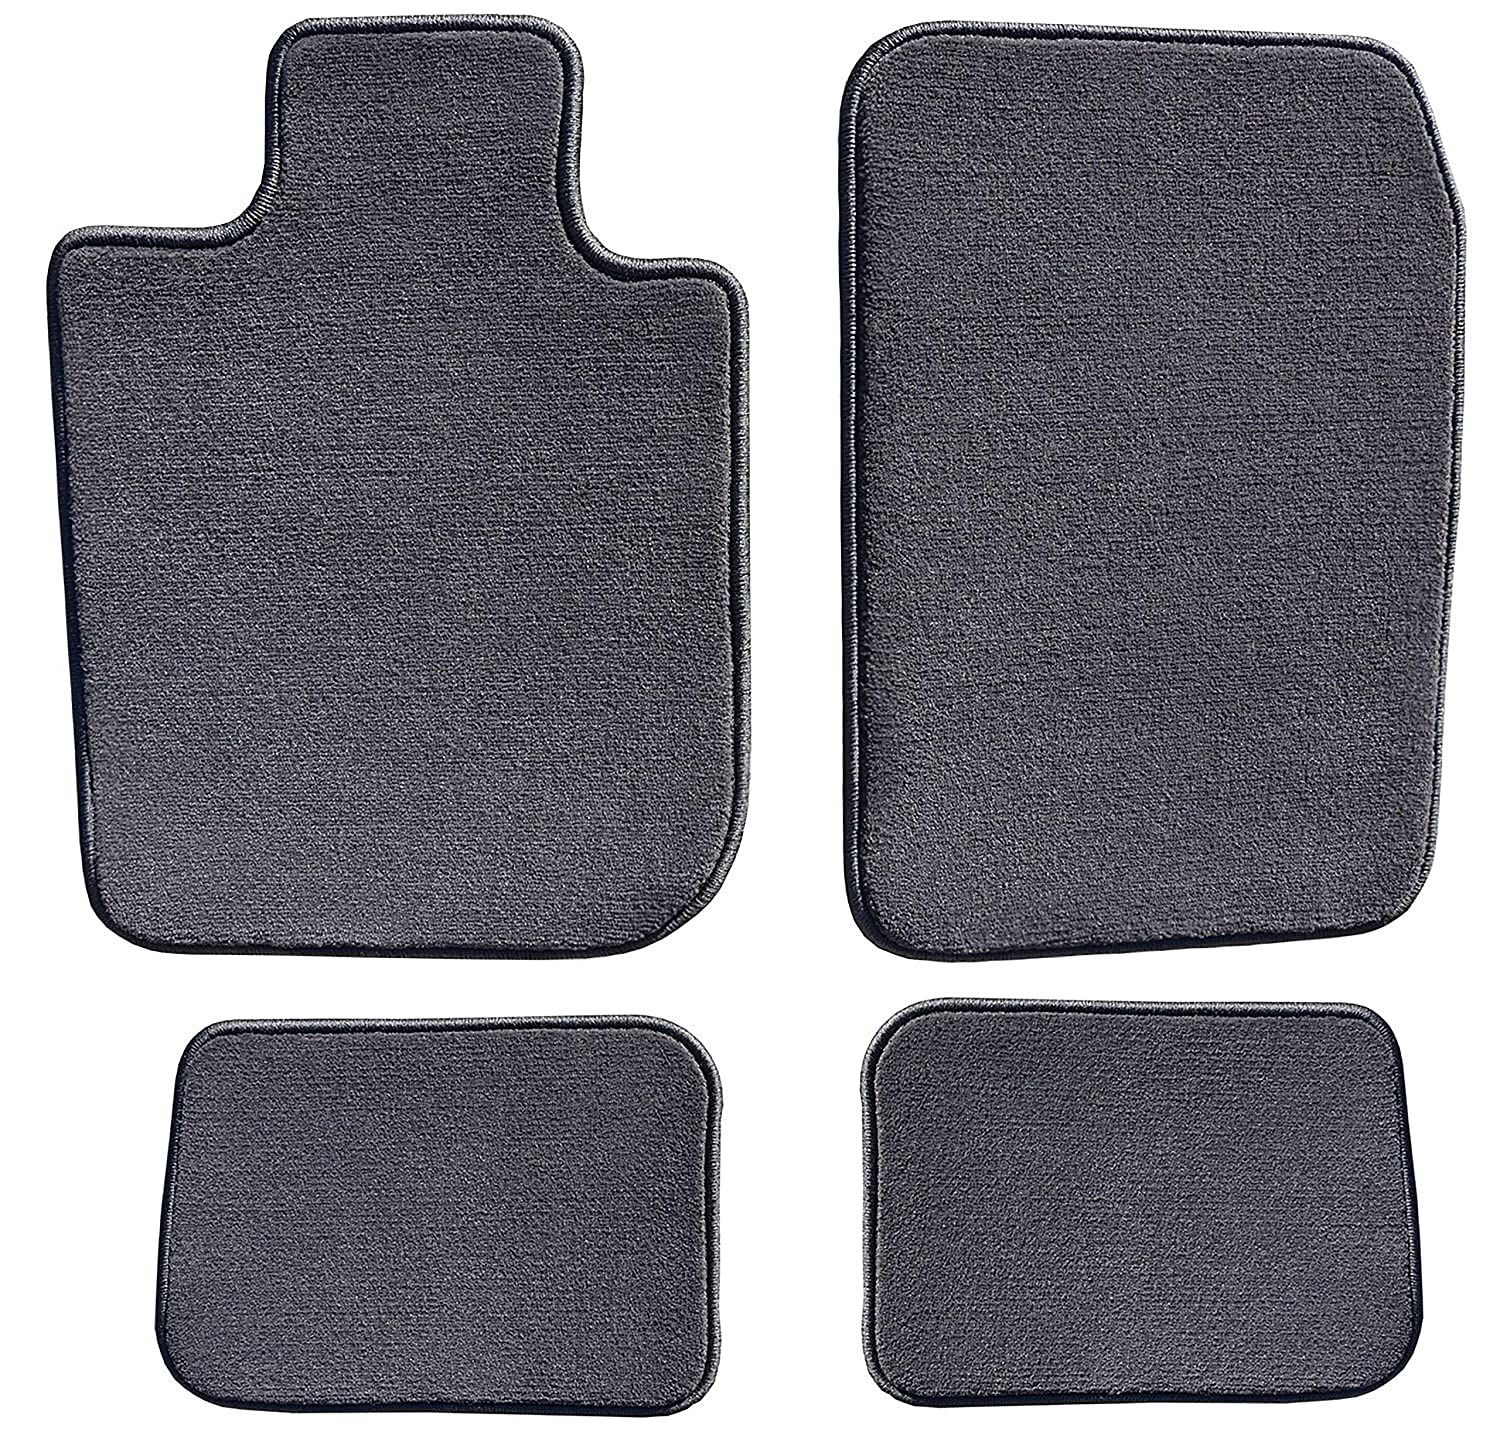 2013 GGBAILEY D50298-F1A-CH-BR Custom Fit Car Mats for 2012 2017 Buick Verano Brown Driver /& Passenger Floor 2016 2014 2015